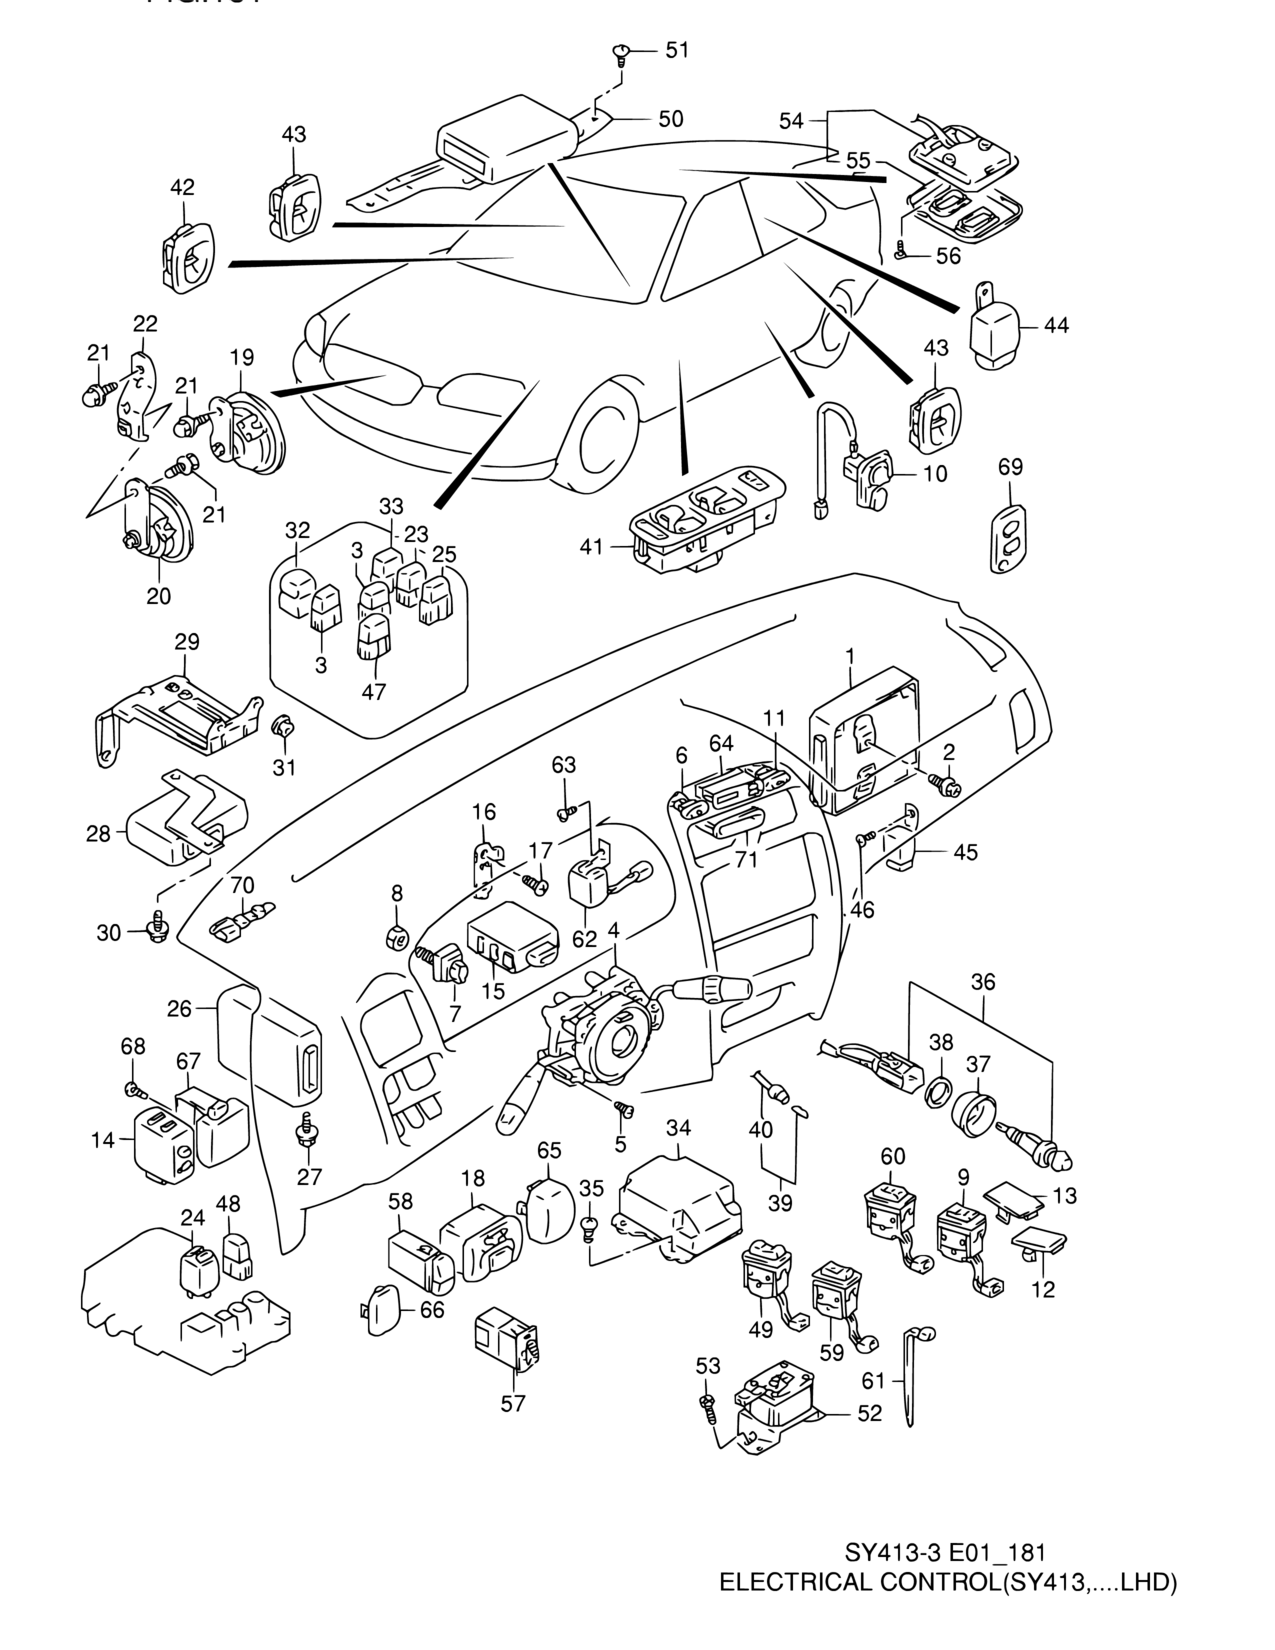 Asia Baleno Esteem Sy418 5 Electrical 181 Control Type Wiring Diagram Parts